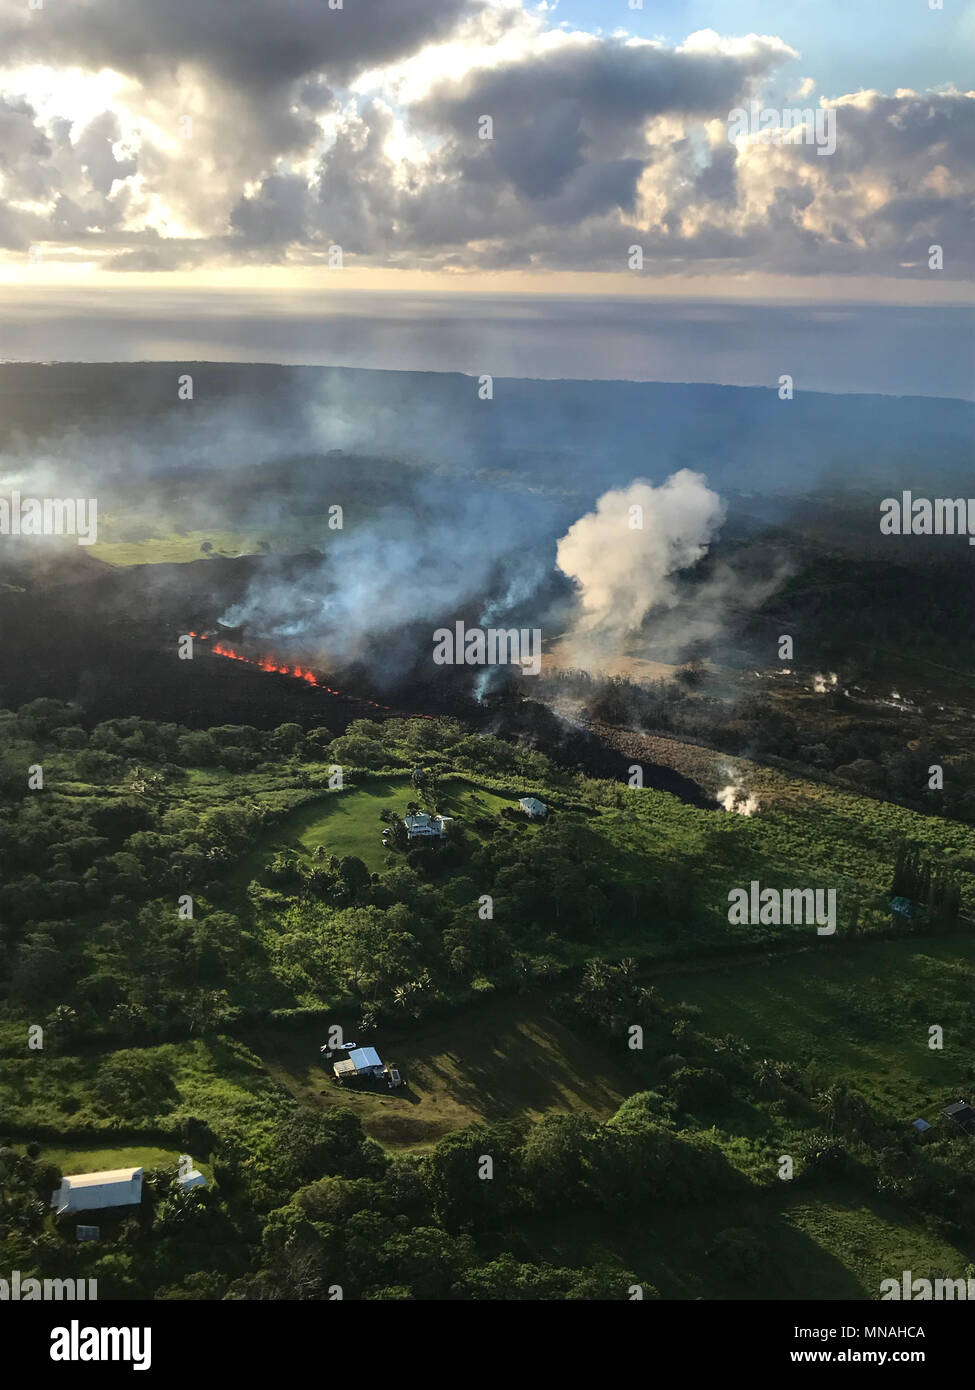 Kilauea Volcano, Hawaii. 15th may 2018. An early morning view of fissure 17 from the Kilauea volcano May 15, 2018 in Hawaii. The recent eruption continues destroying homes, forcing evacuations and spewing lava and poison gas on the Big Island of Hawaii. Credit: Planetpix/Alamy Live News Stock Photo